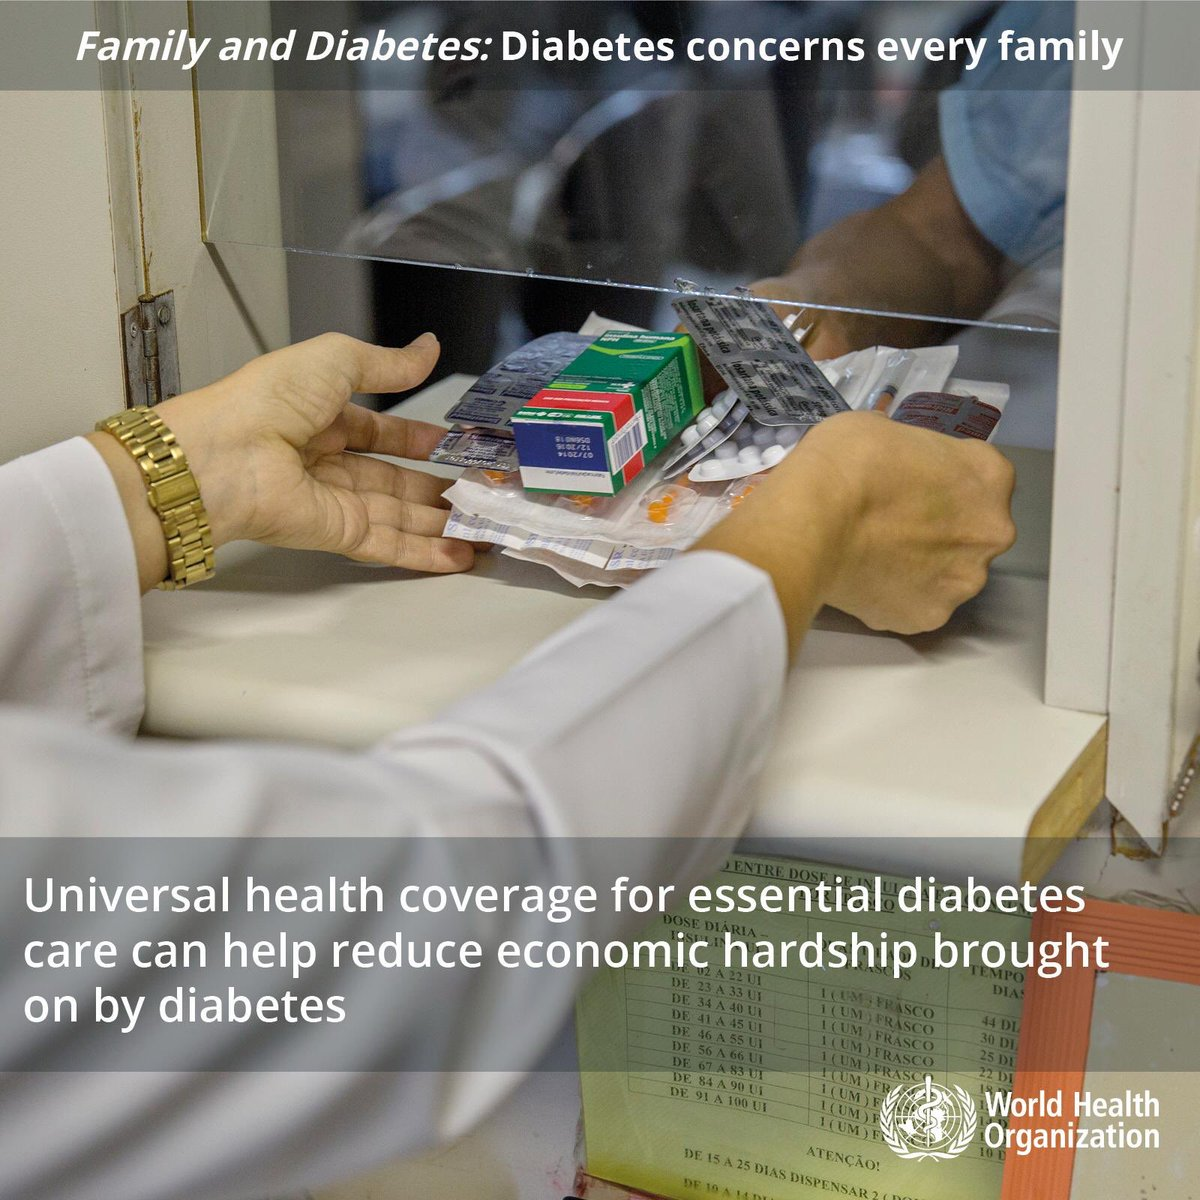 test Twitter Media - Diabetes can be a large financial burden for people with #diabetes and their families. We need universal health coverage for essential #diabetes care so we can help these families reduce the economic hardship caused by diabetes #HealthForAll #WorldDiabetesDay https://t.co/b3wNFzqJ9a